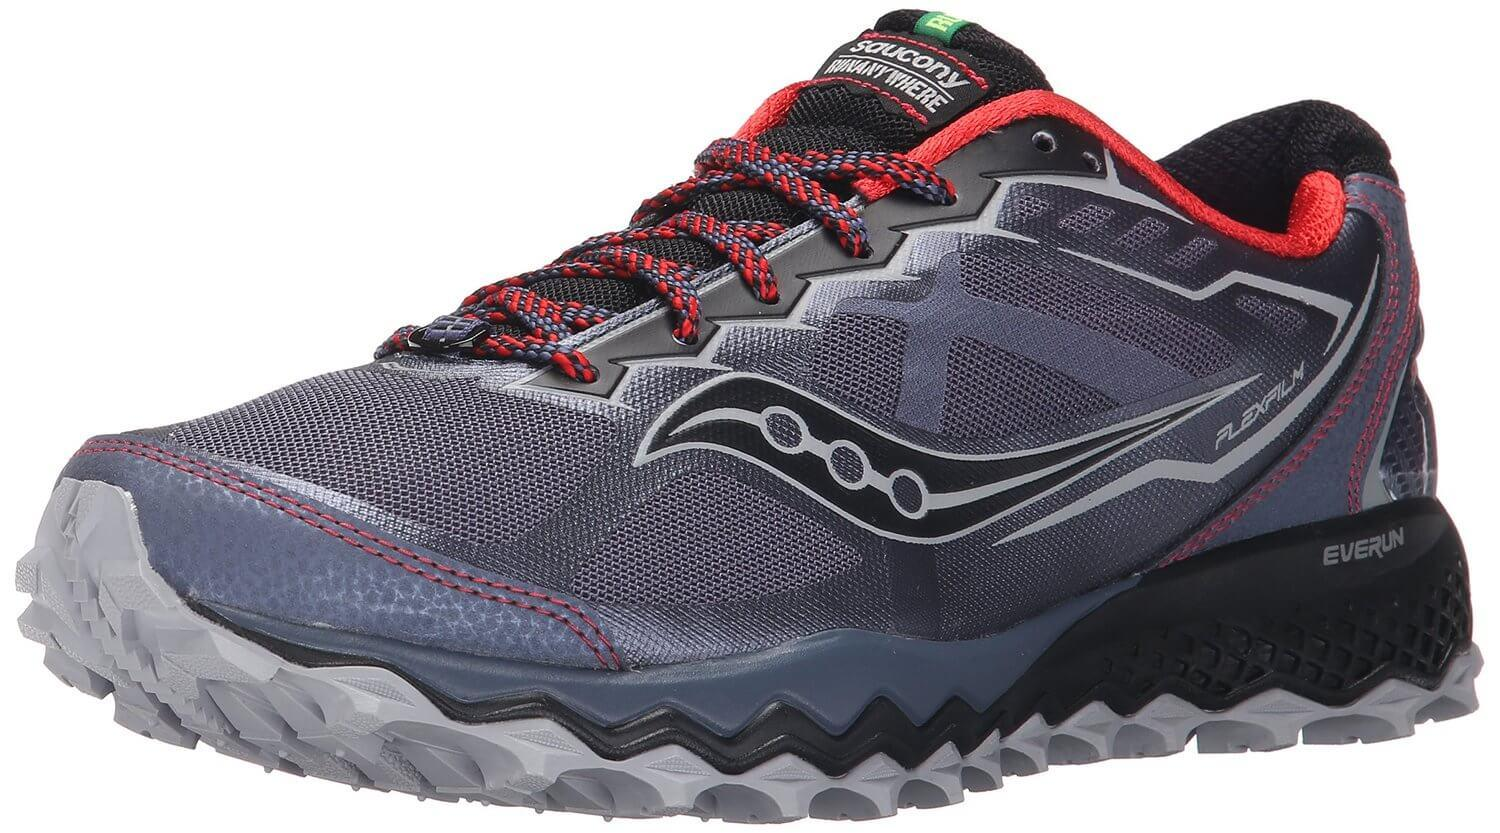 48424e8a81d4 the Saucony Peregrine 6 is a durable trail shoe that offers breathability  and great grip ...